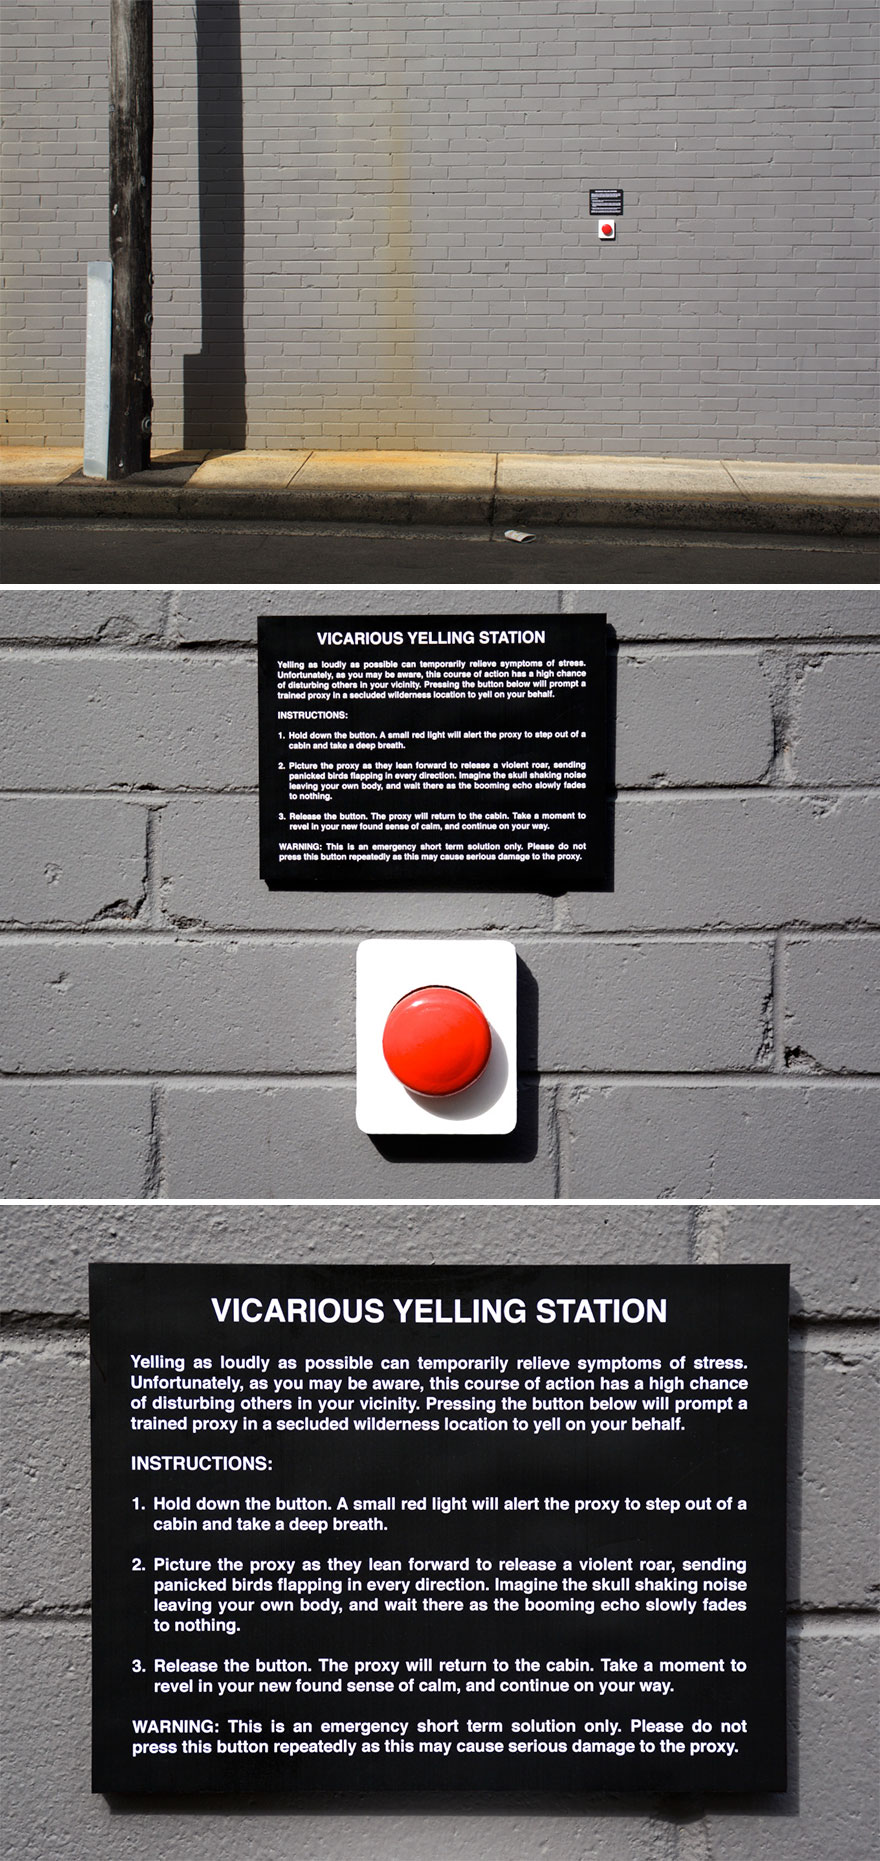 Vicarious Yelling Station